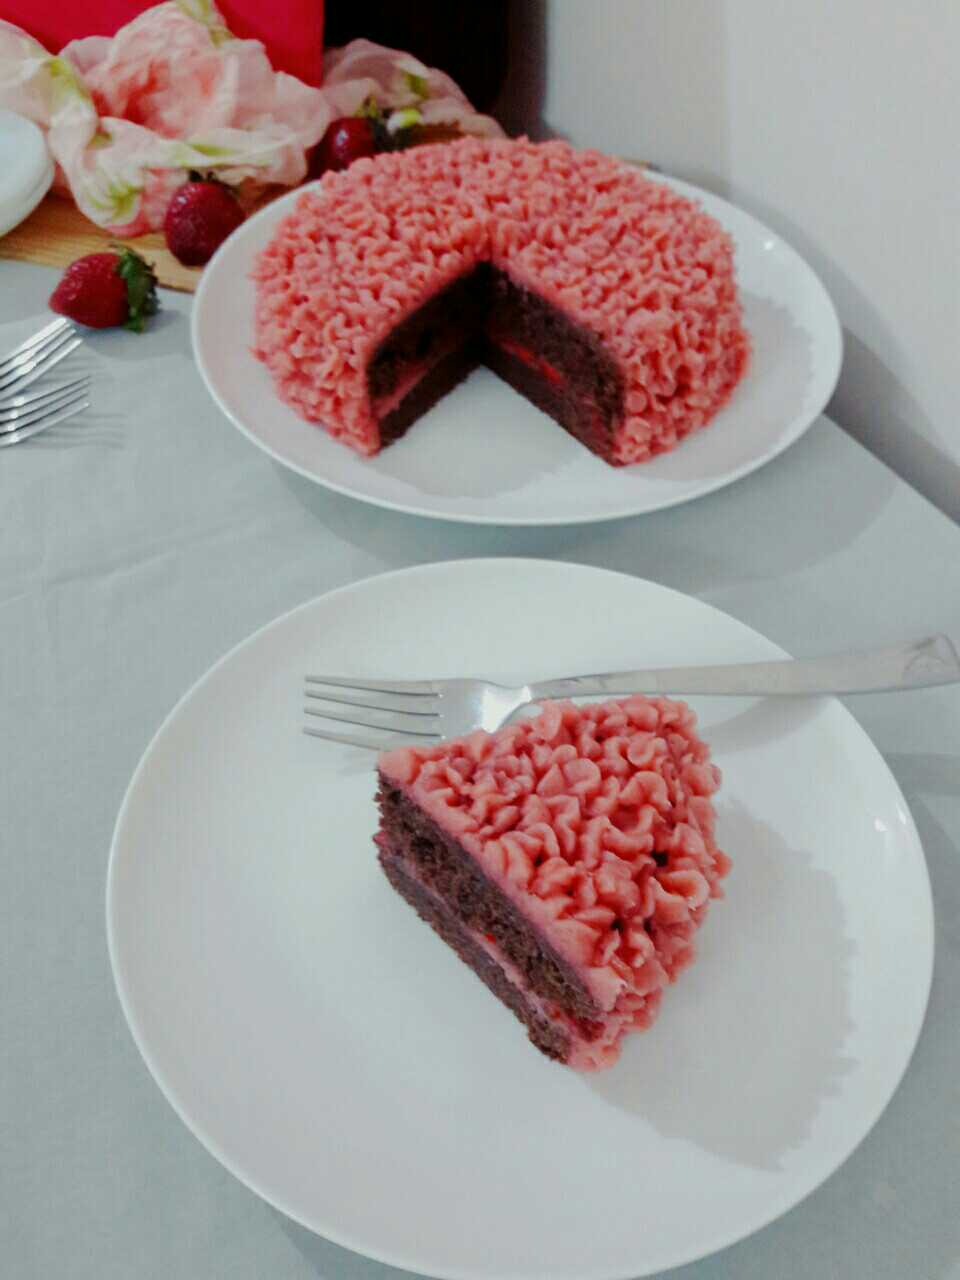 Chocolate Cake With Strawberry Buttercream Frosting